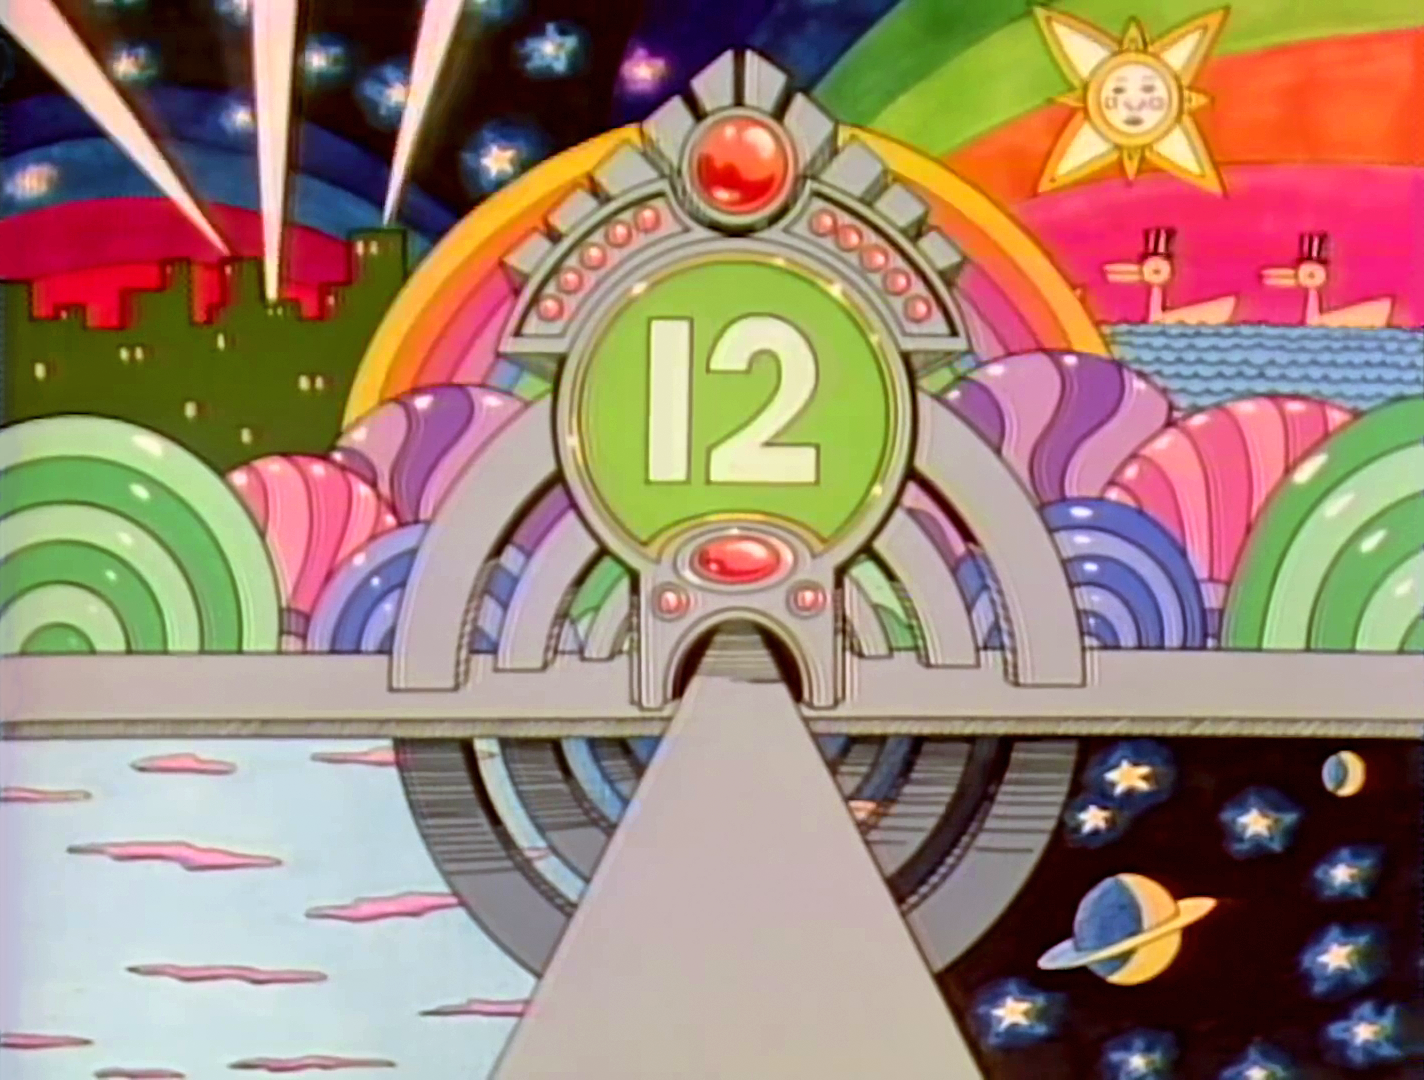 Pinball Number Count